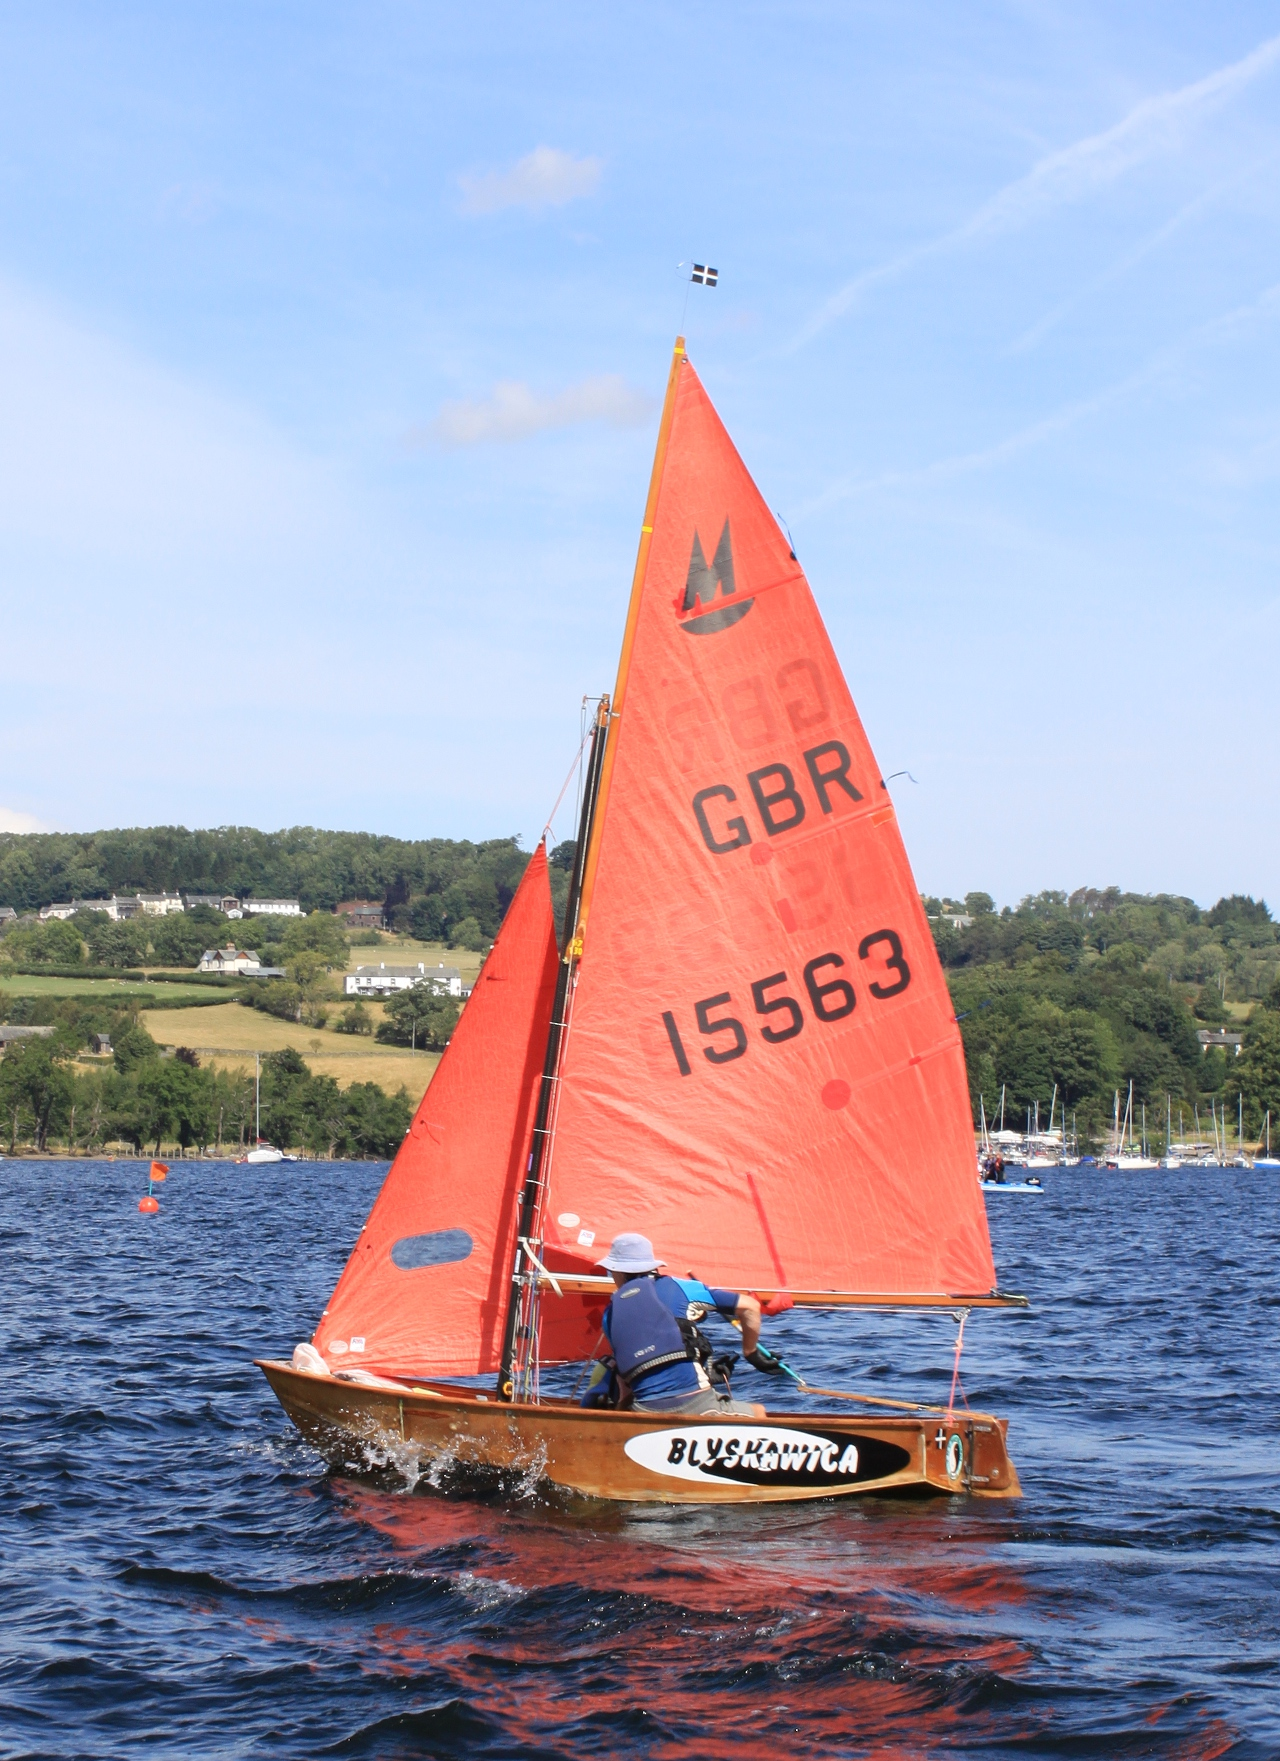 A varnished wooden Mirror dinghy with gaff rig racing to windward on Ullswater in the Lake District